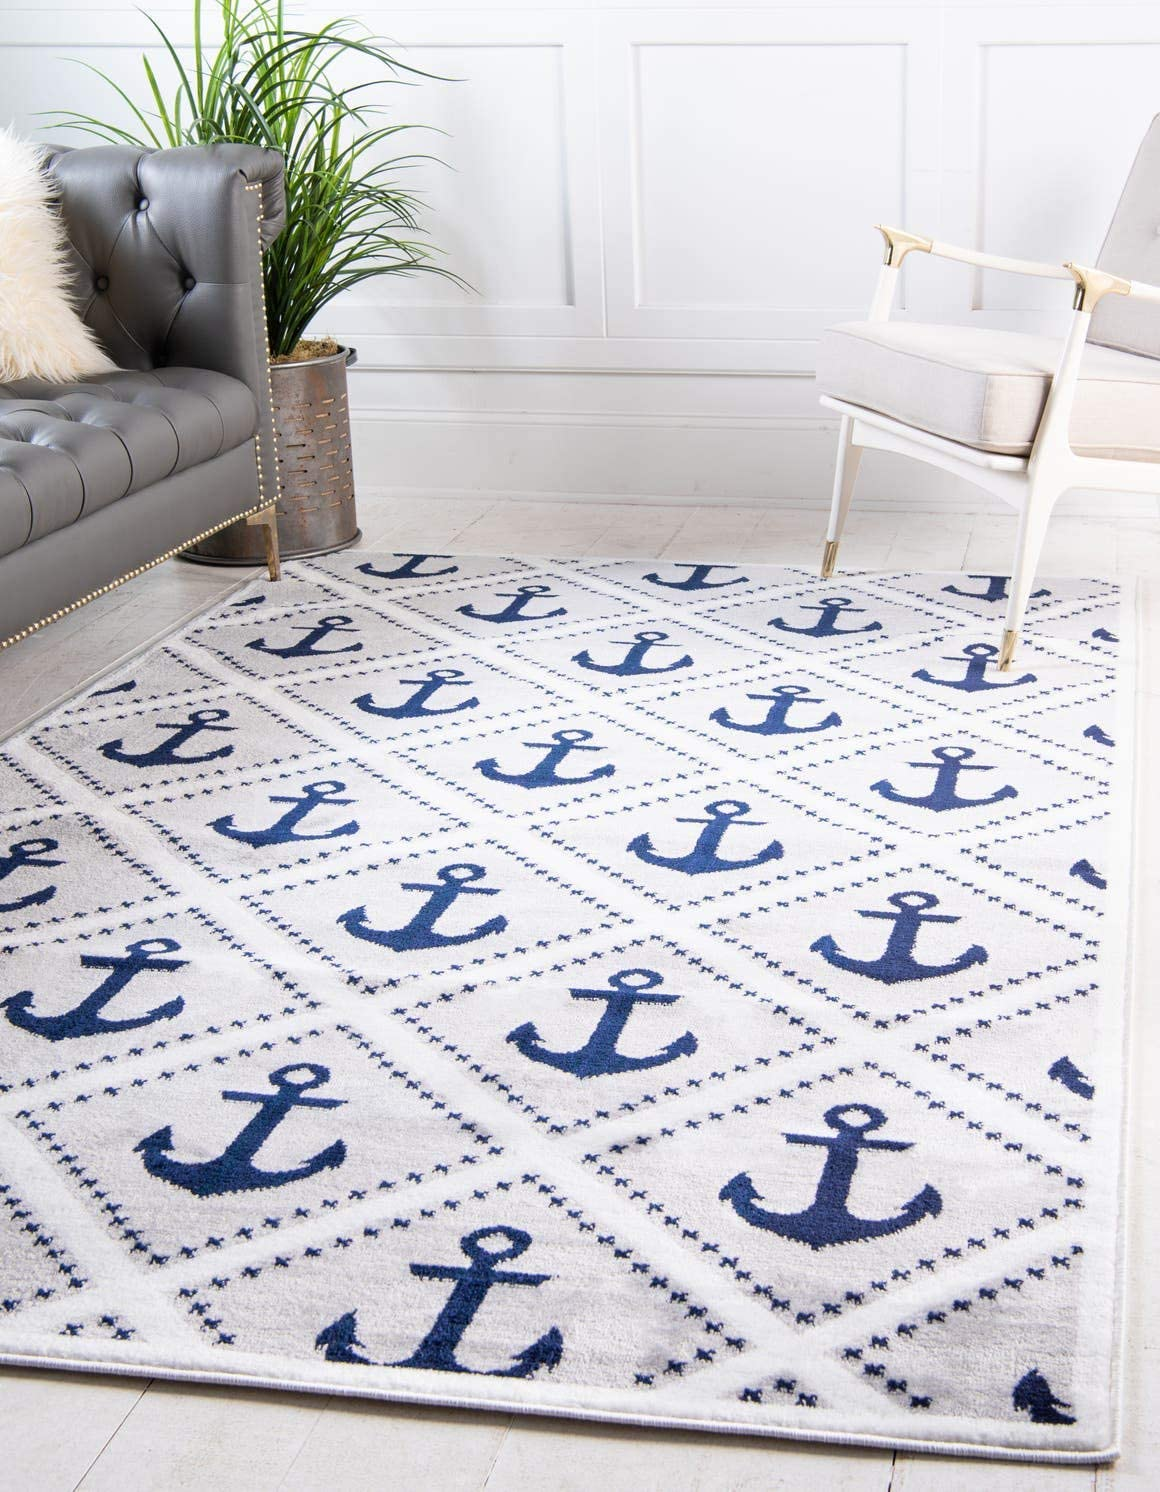 Unique Loom Metro Collection Modern Nautical Geometric Anchor Gray Area Rug 5 0 x 8 0